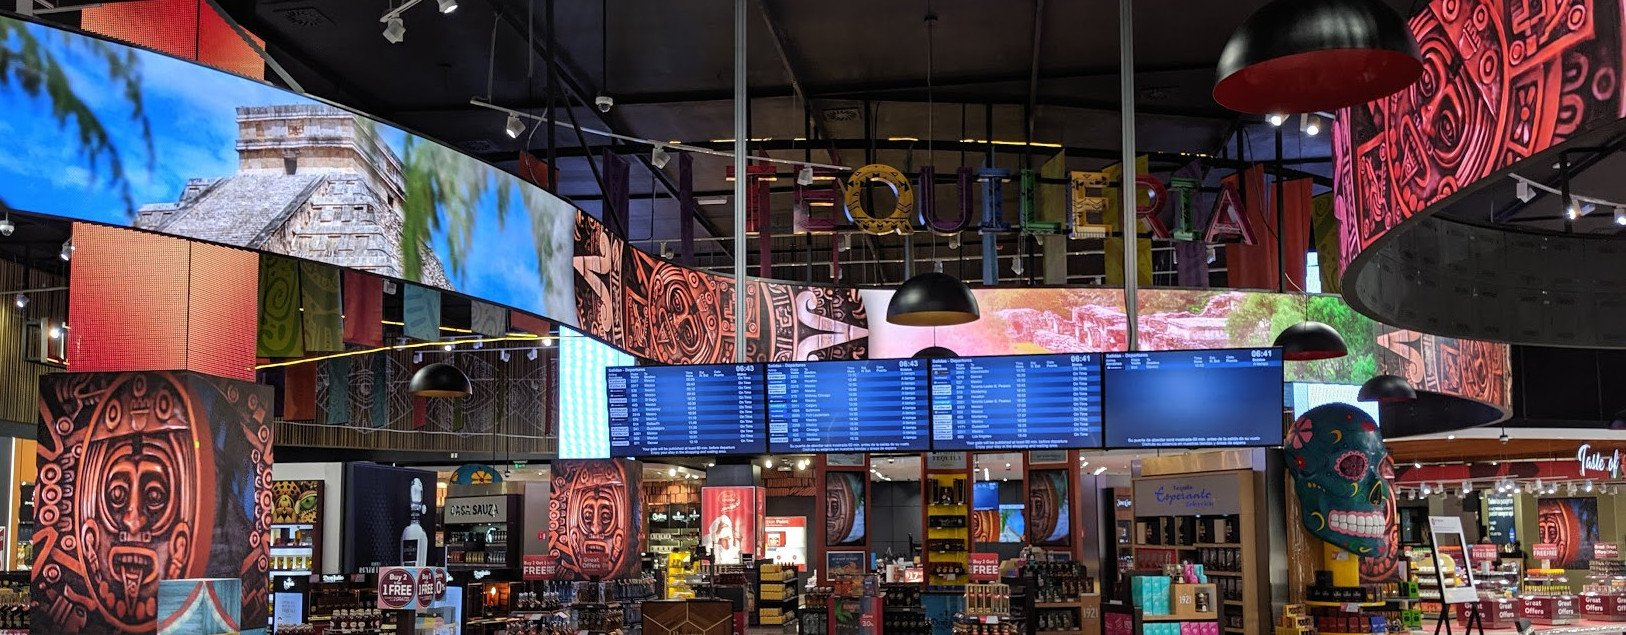 Dufry Digital Travel Retail at Cancun Airport (Photo: invidis)